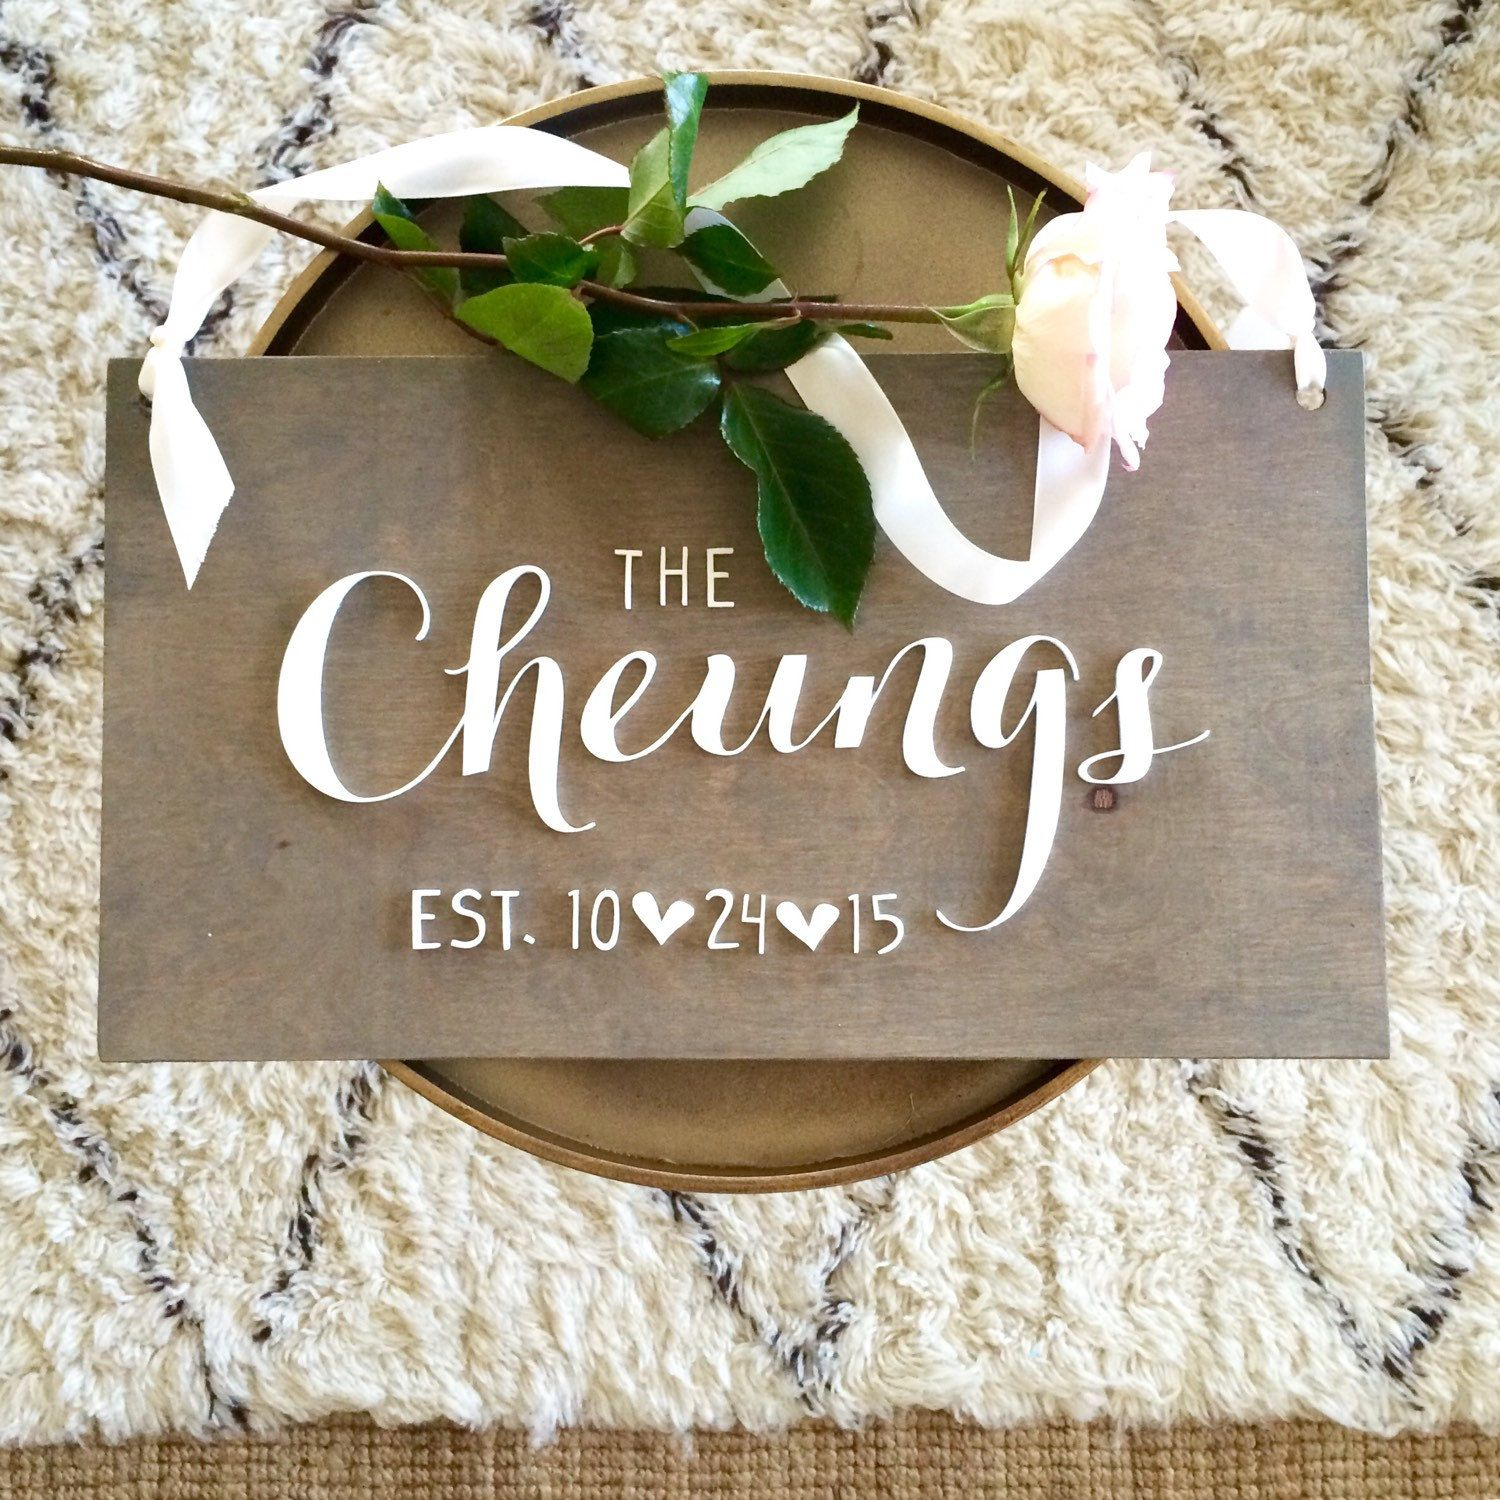 Practical Wedding Gifts For The Newlyweds: Pinterest